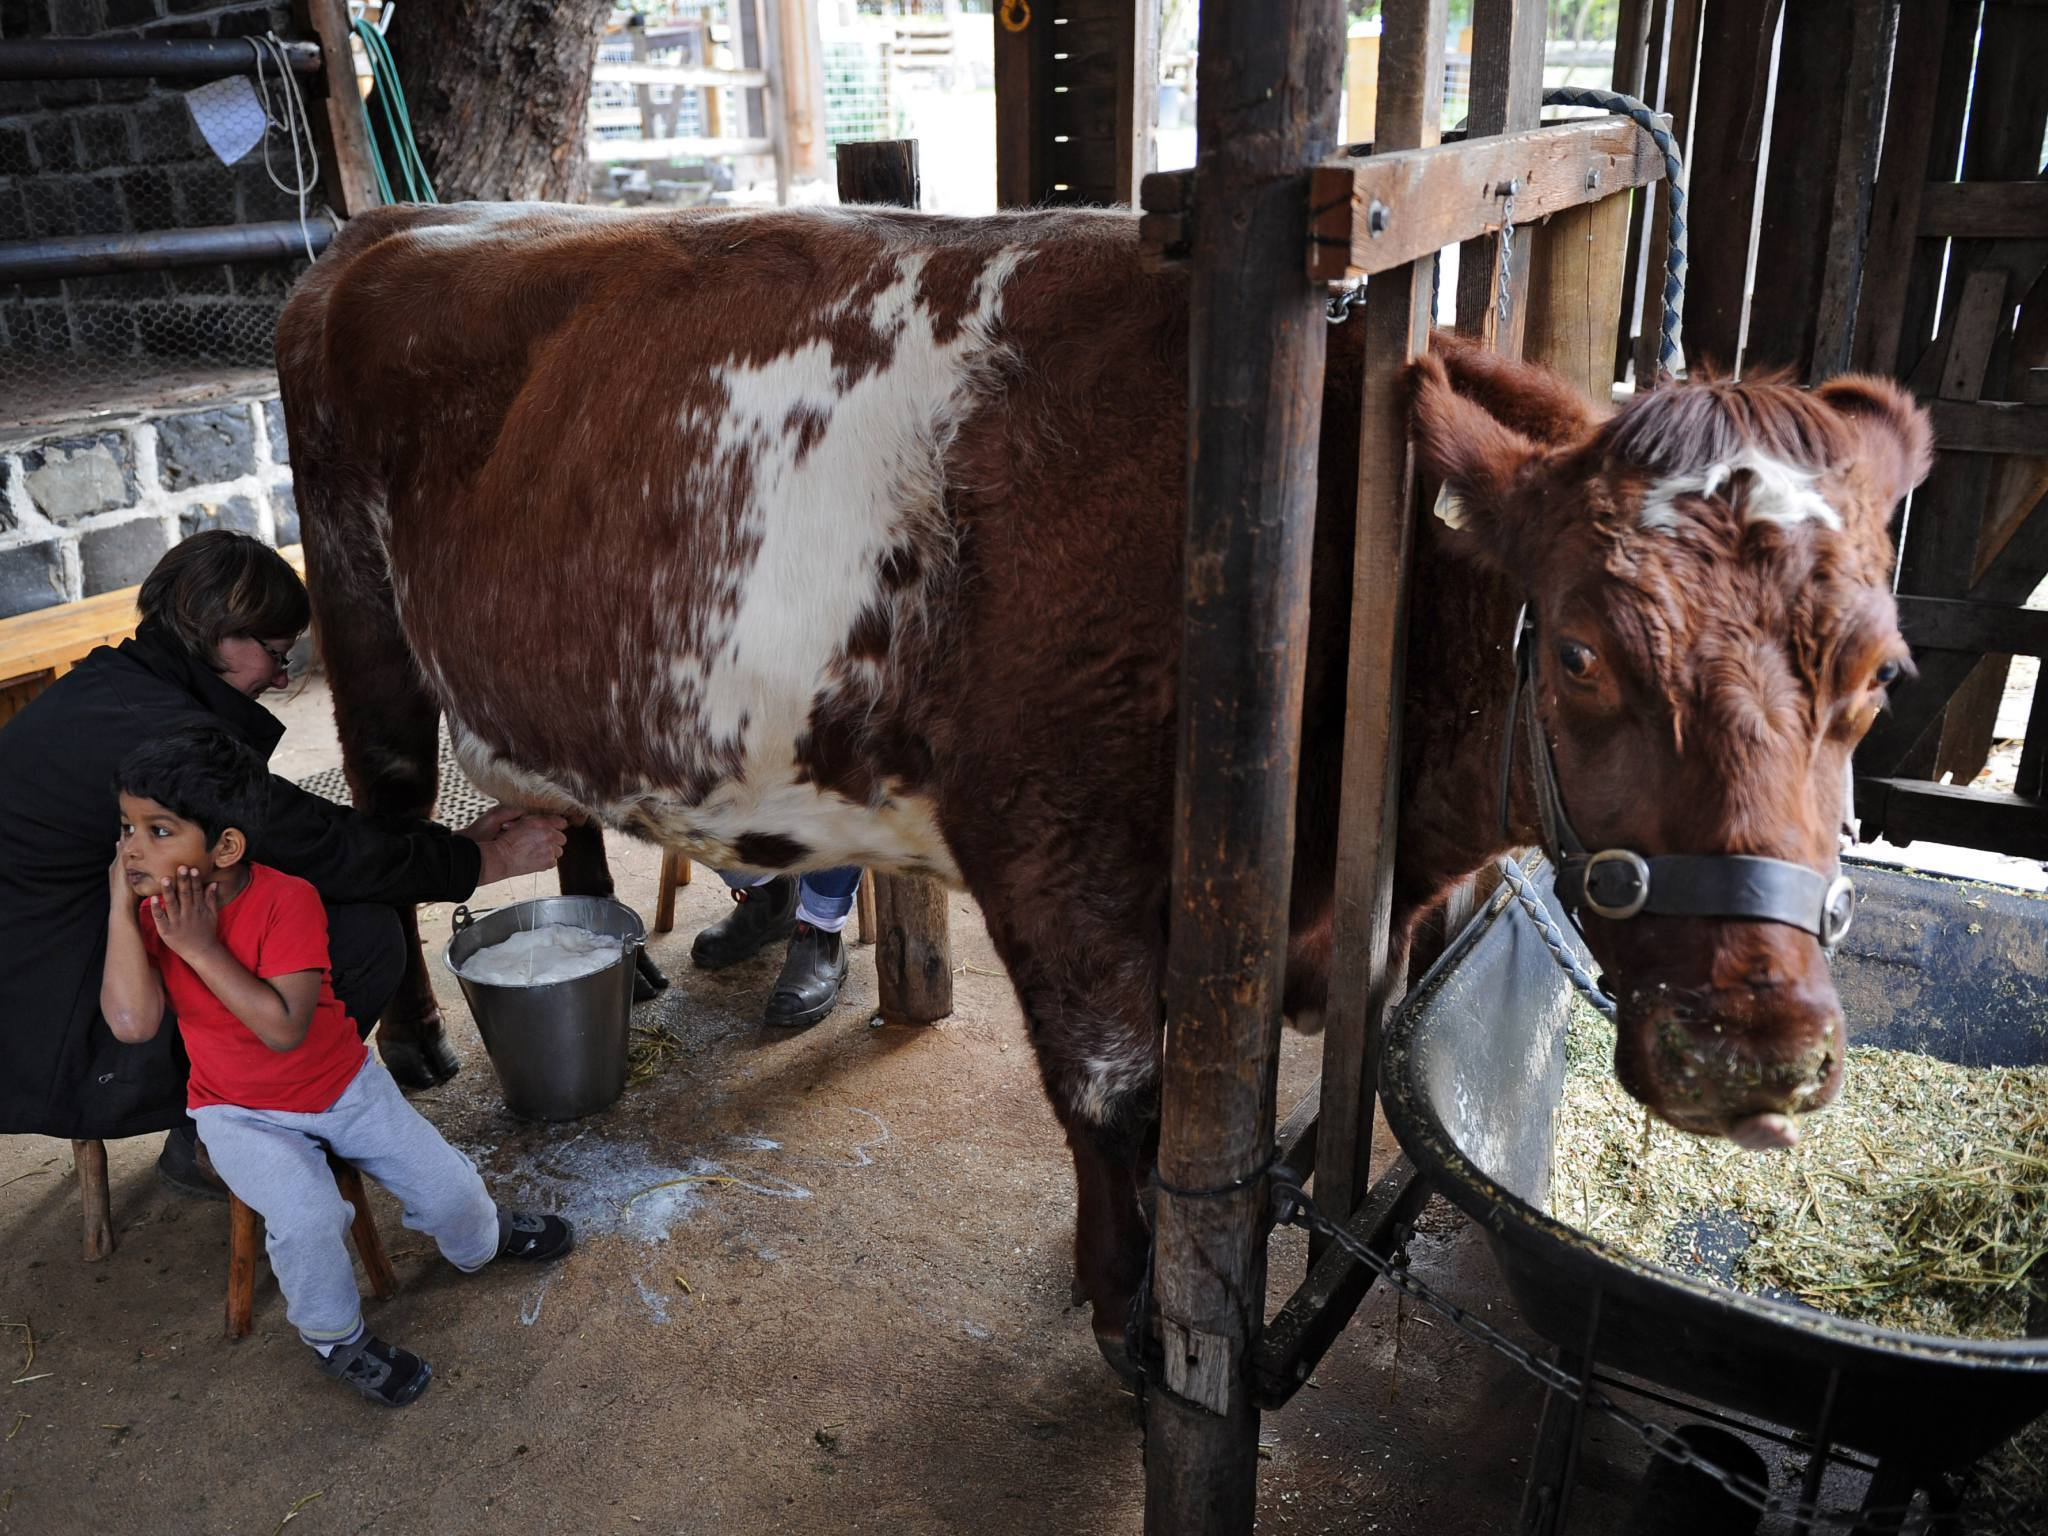 Tocky the cow being milked at Collingwood Children's Farm